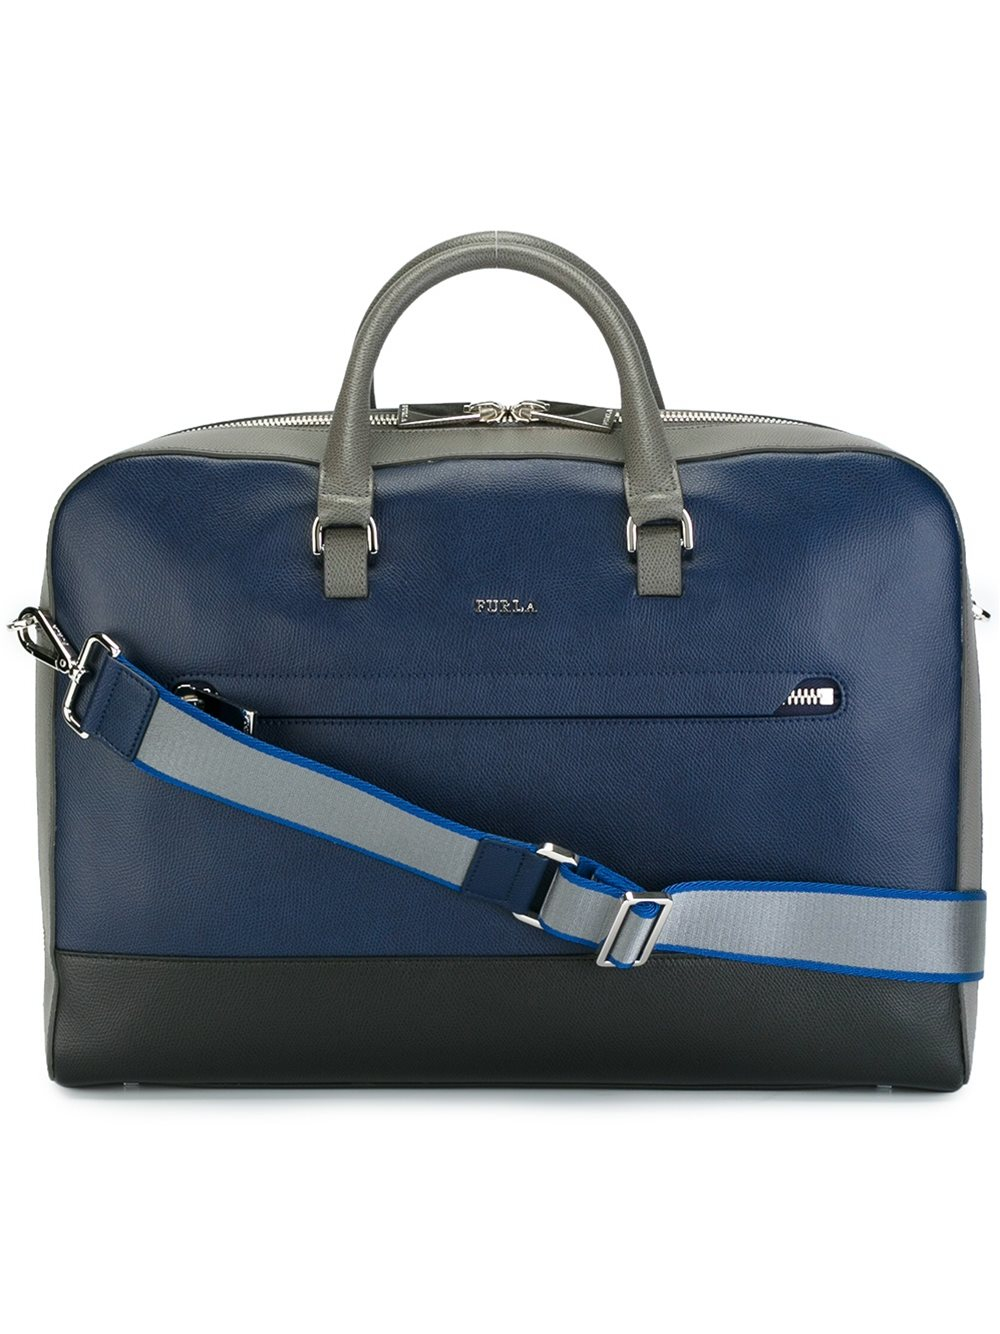 a520e7017d93 Lyst - Furla Top Handle Briefcase in Blue for Men